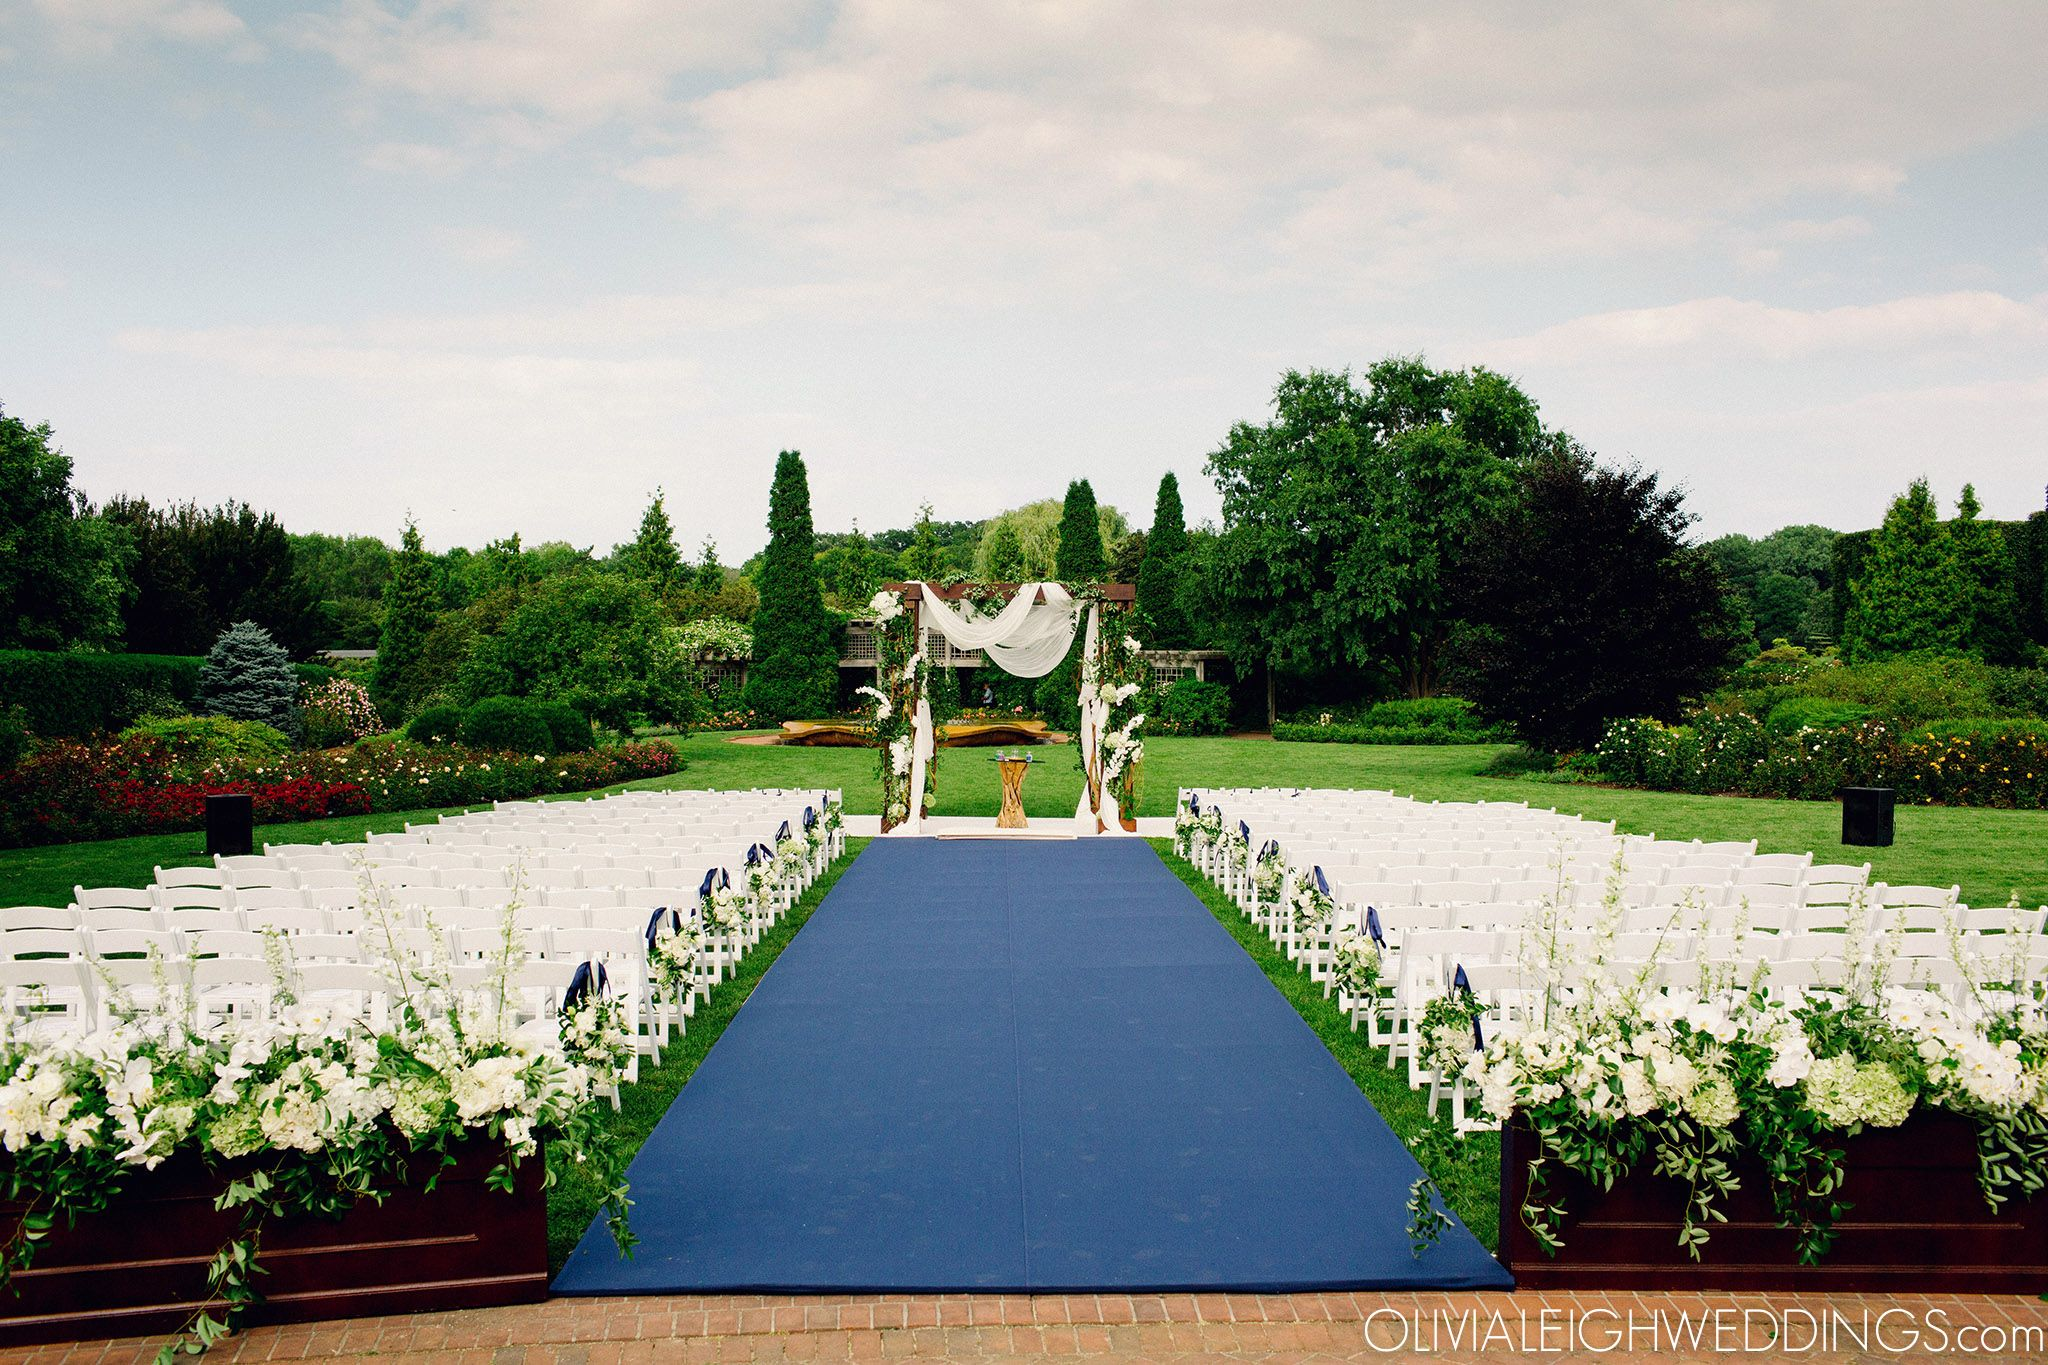 it's a beautiful day for a wedding in the rose garden at the